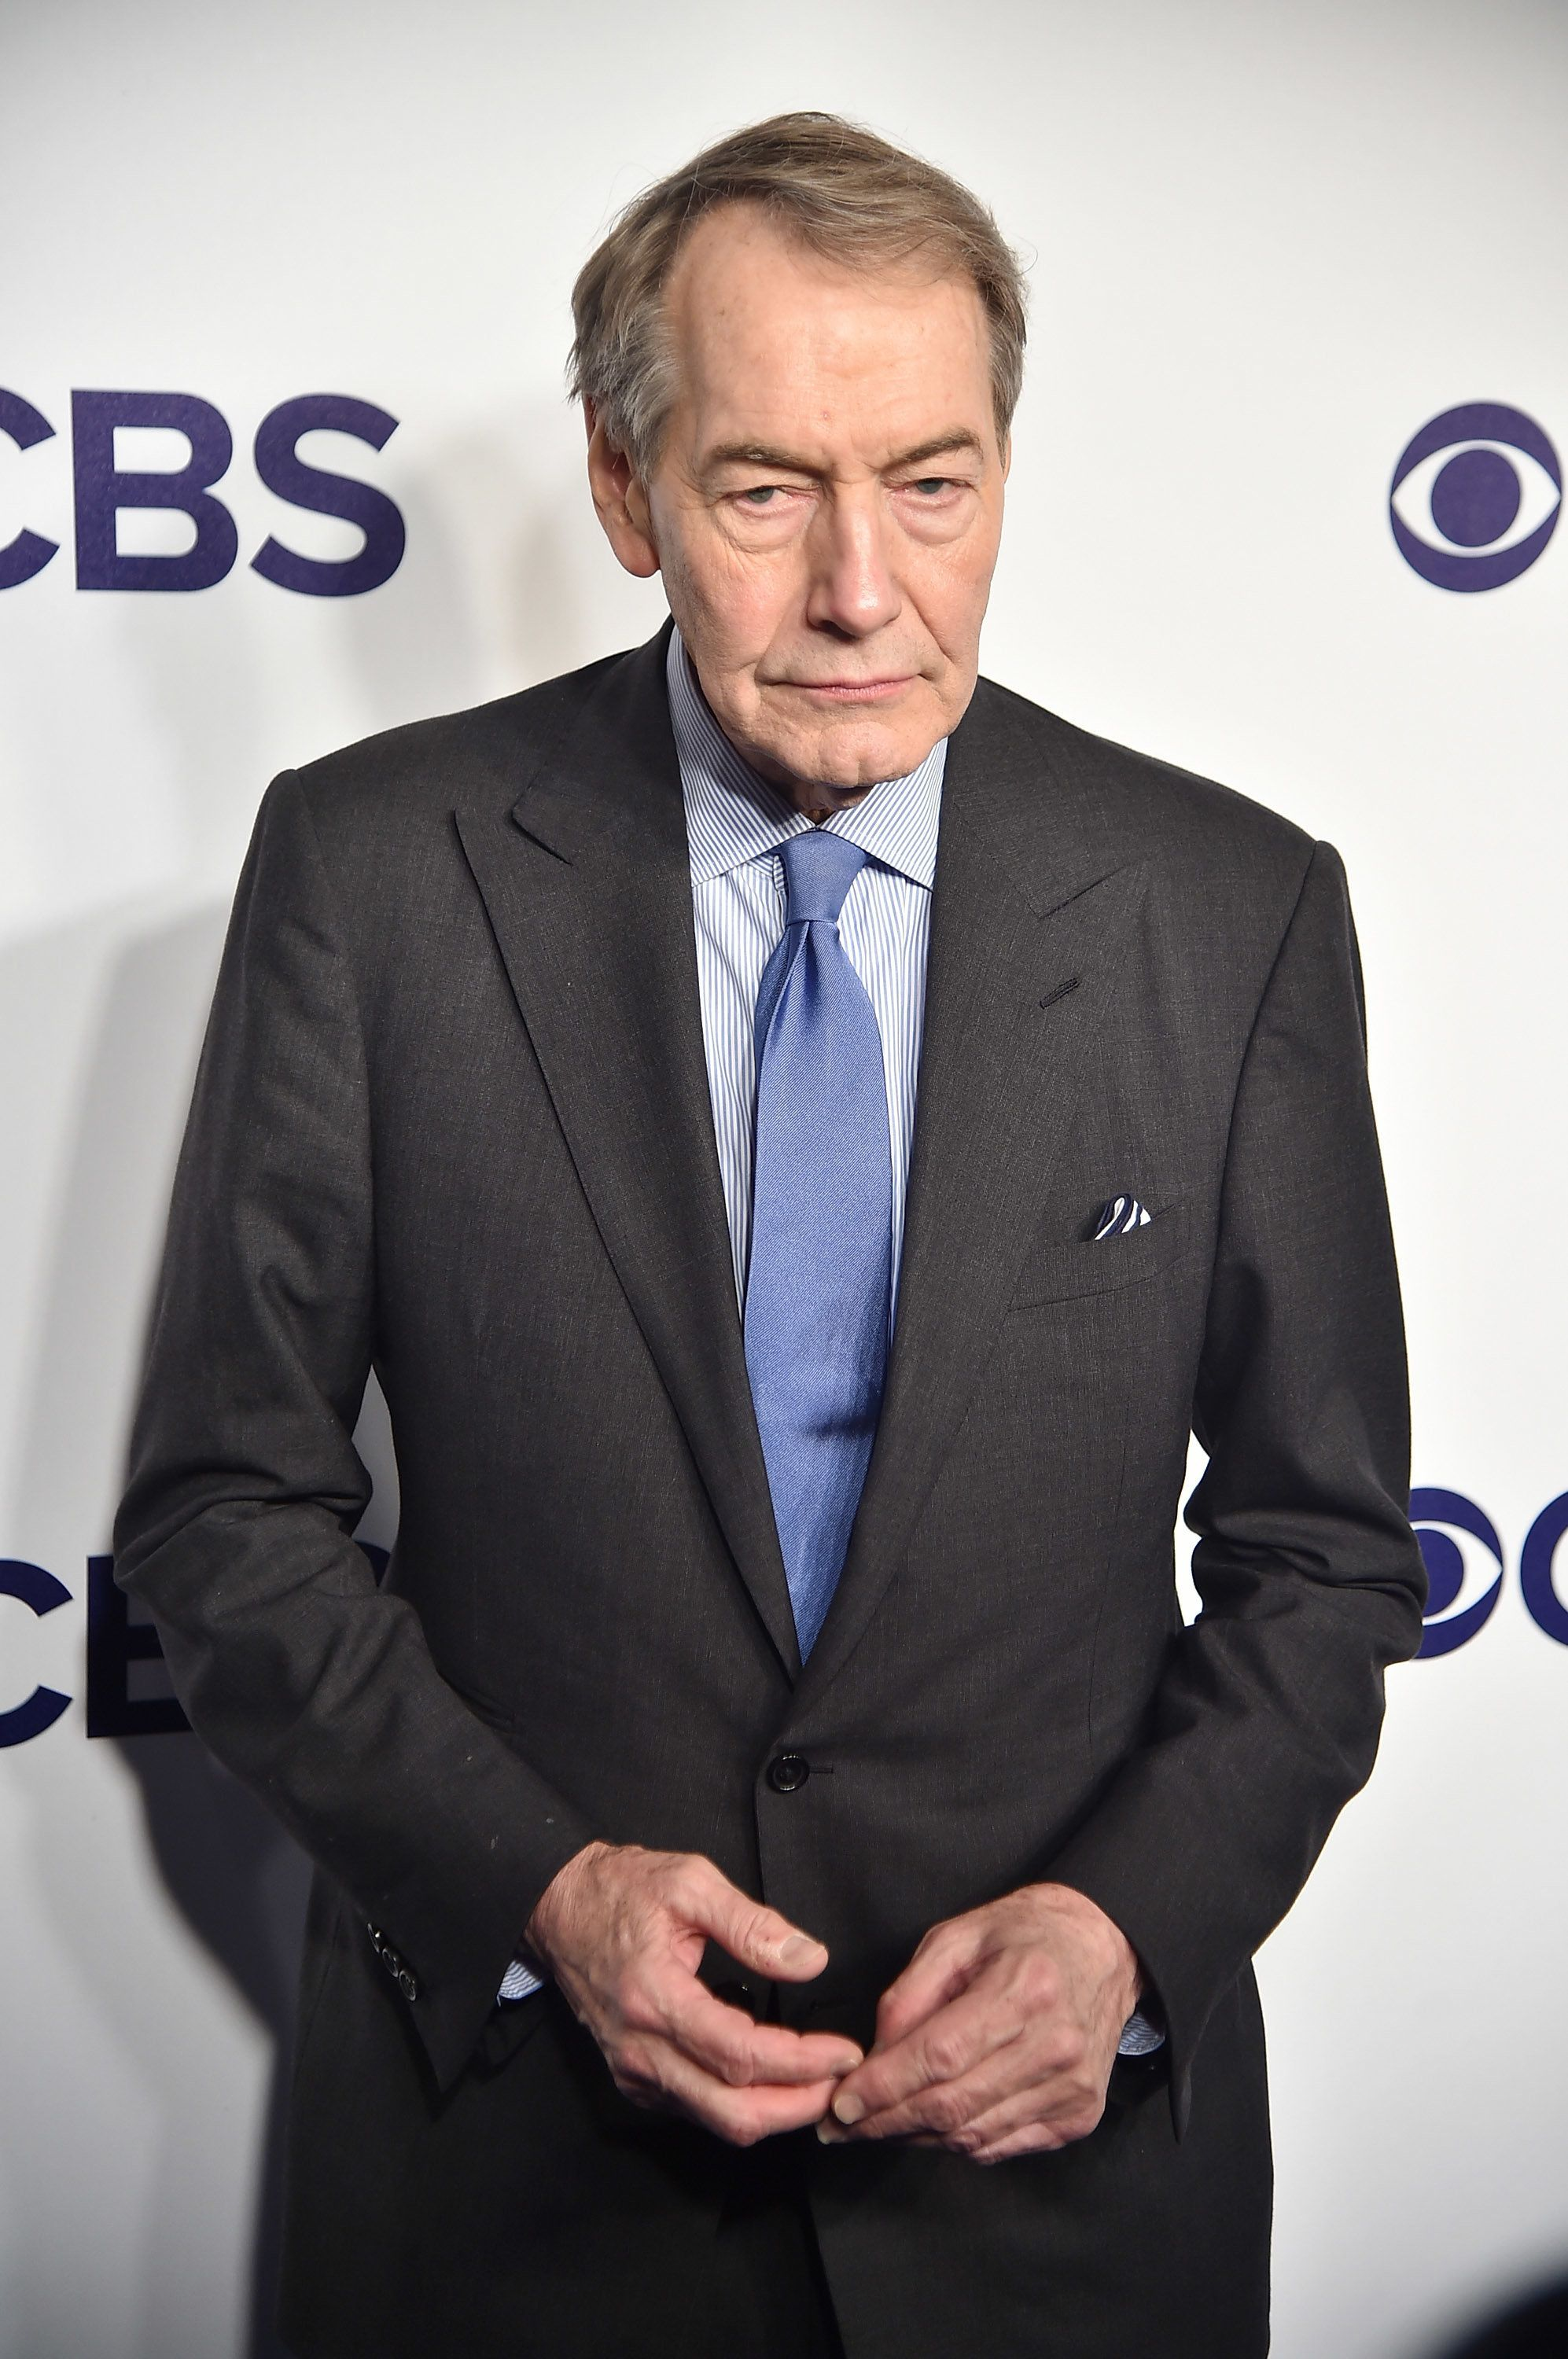 NEW YORK, NY - MAY 17:  Charlie Rose attends the 2017 CBS Upfront on May 17, 2017 in New York City.  (Photo by Theo Wargo/Getty Images)